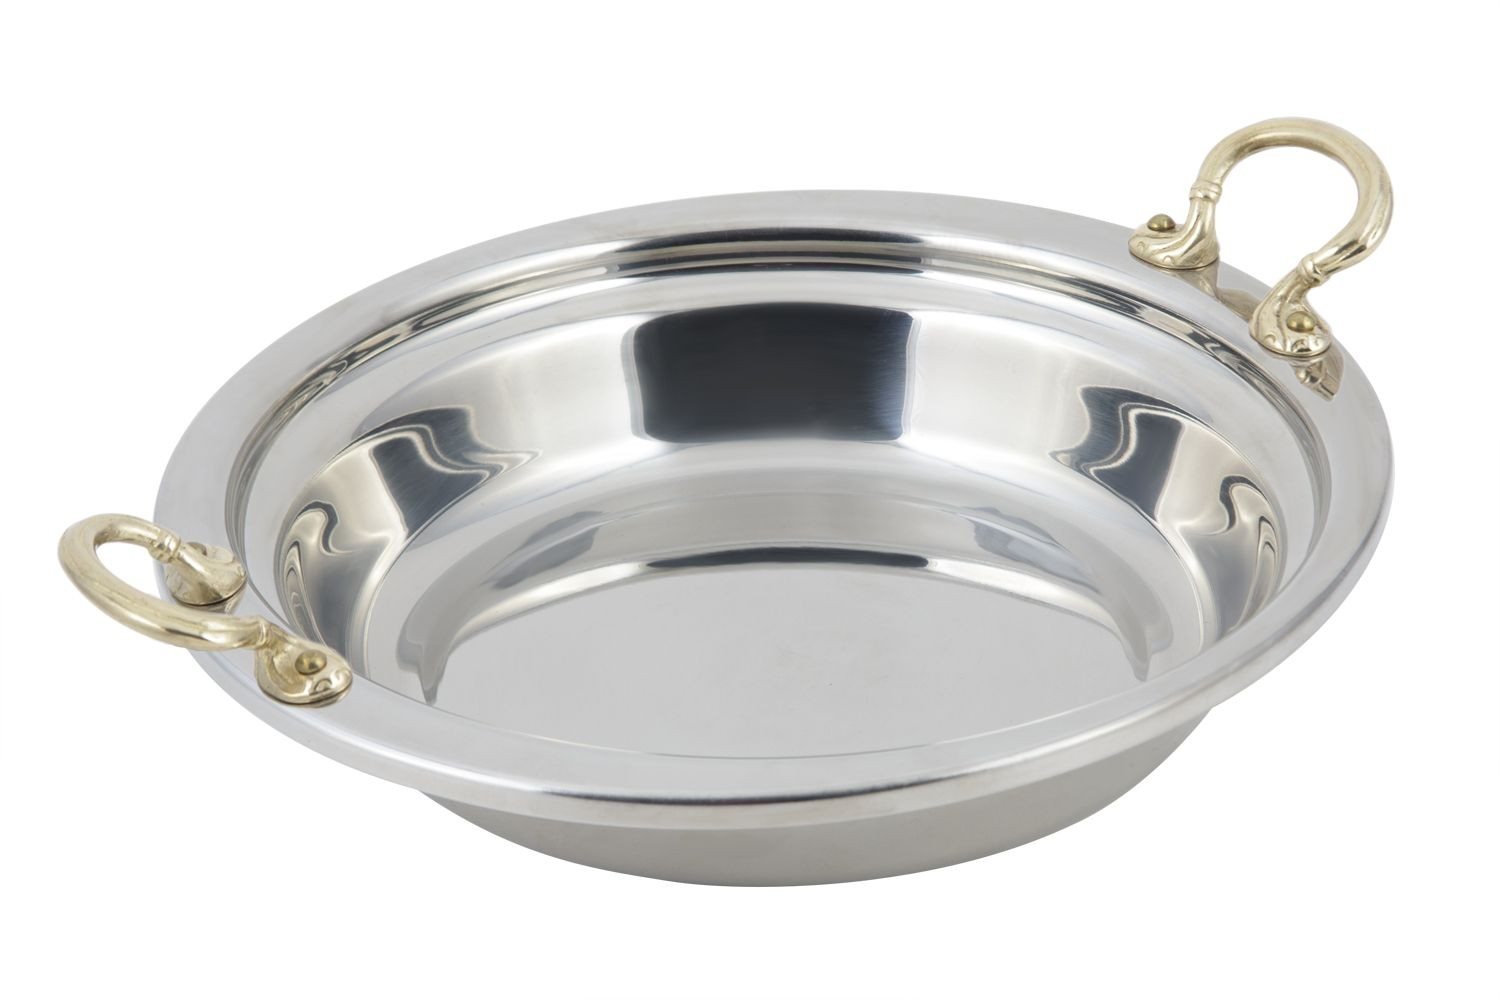 Bon Chef 5255HR Plain Design Casserole Dish with Round Brass Handles, 2 1/2 Qt.